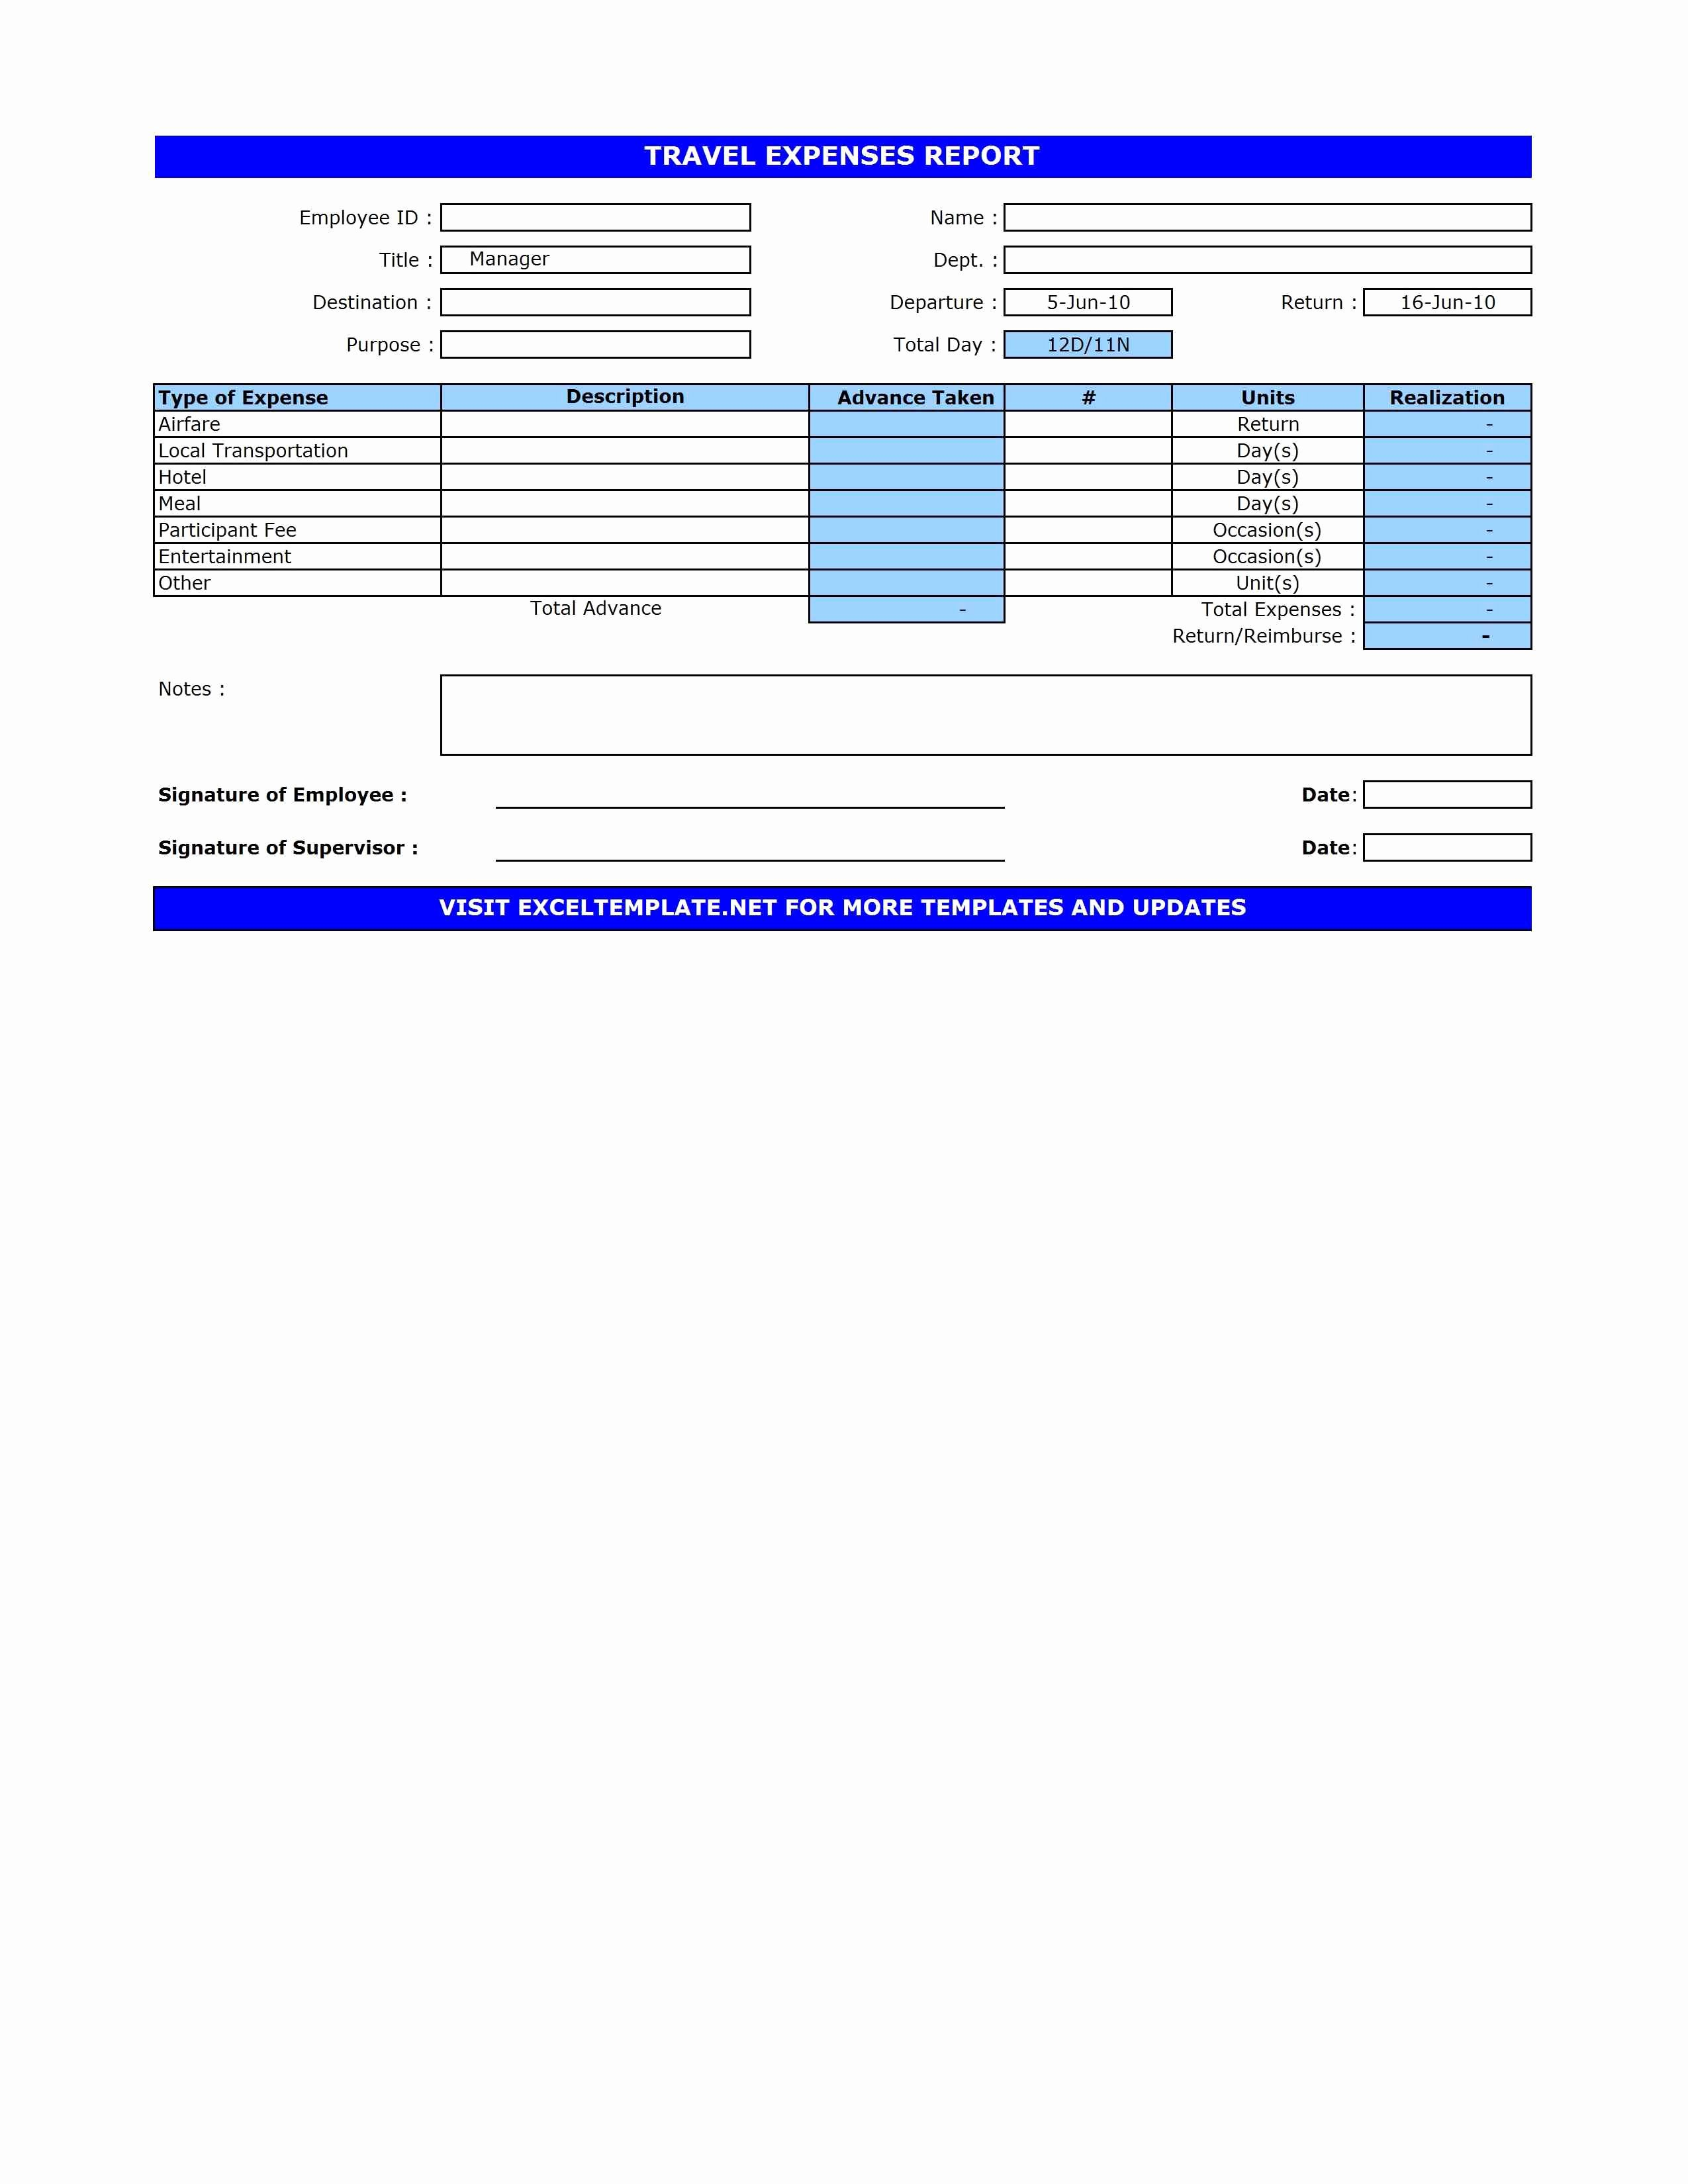 Excel Travel Expense Template New Travel Expenses Report Template